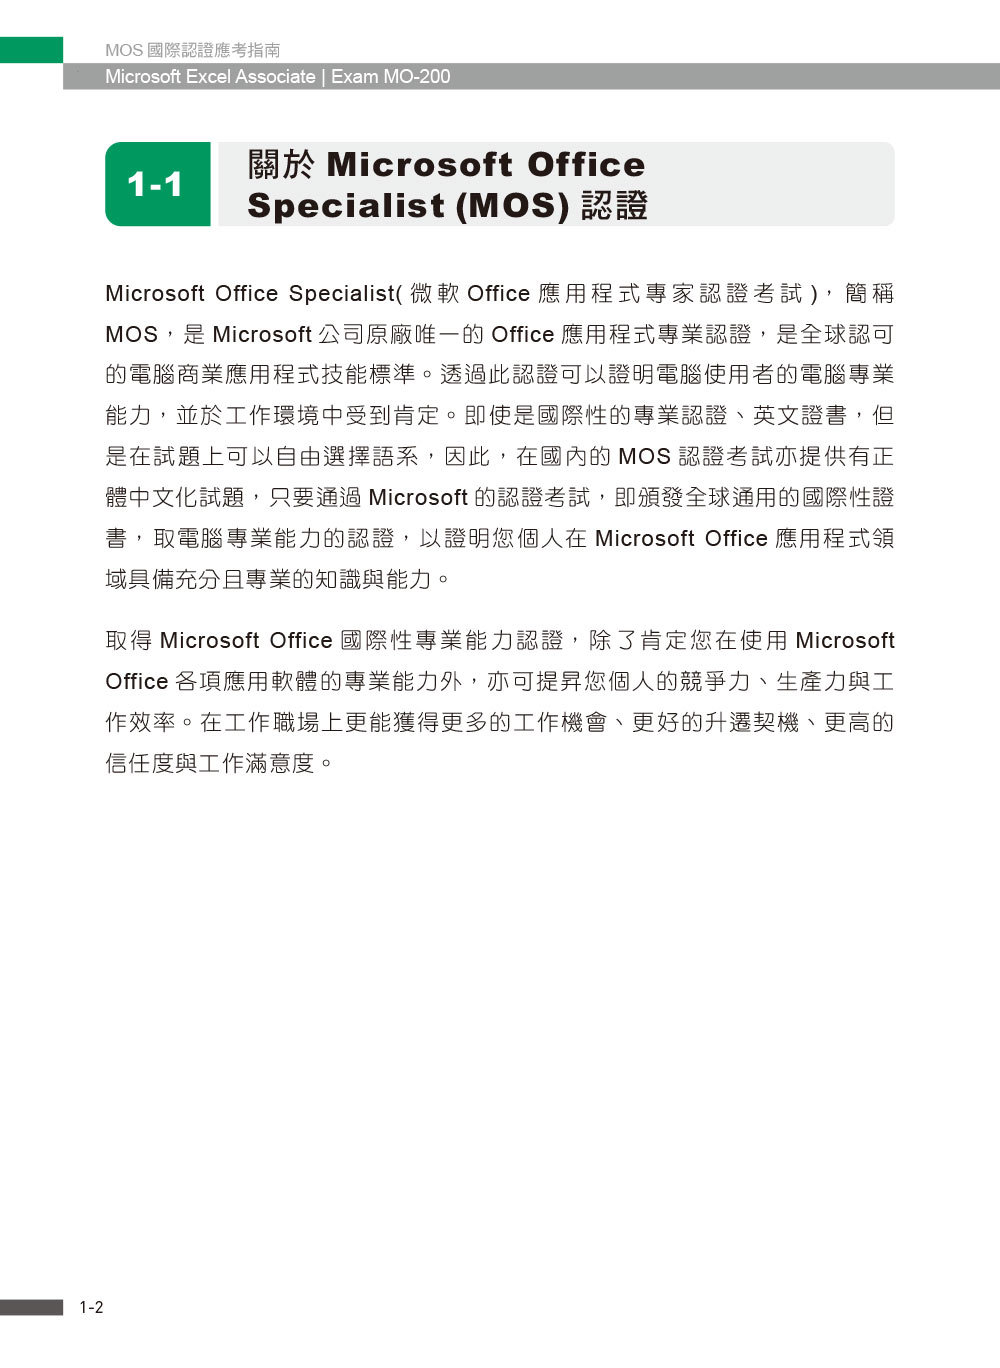 MOS 國際認證應考指南 -- Microsoft Excel Associate|Exam MO-200-preview-2